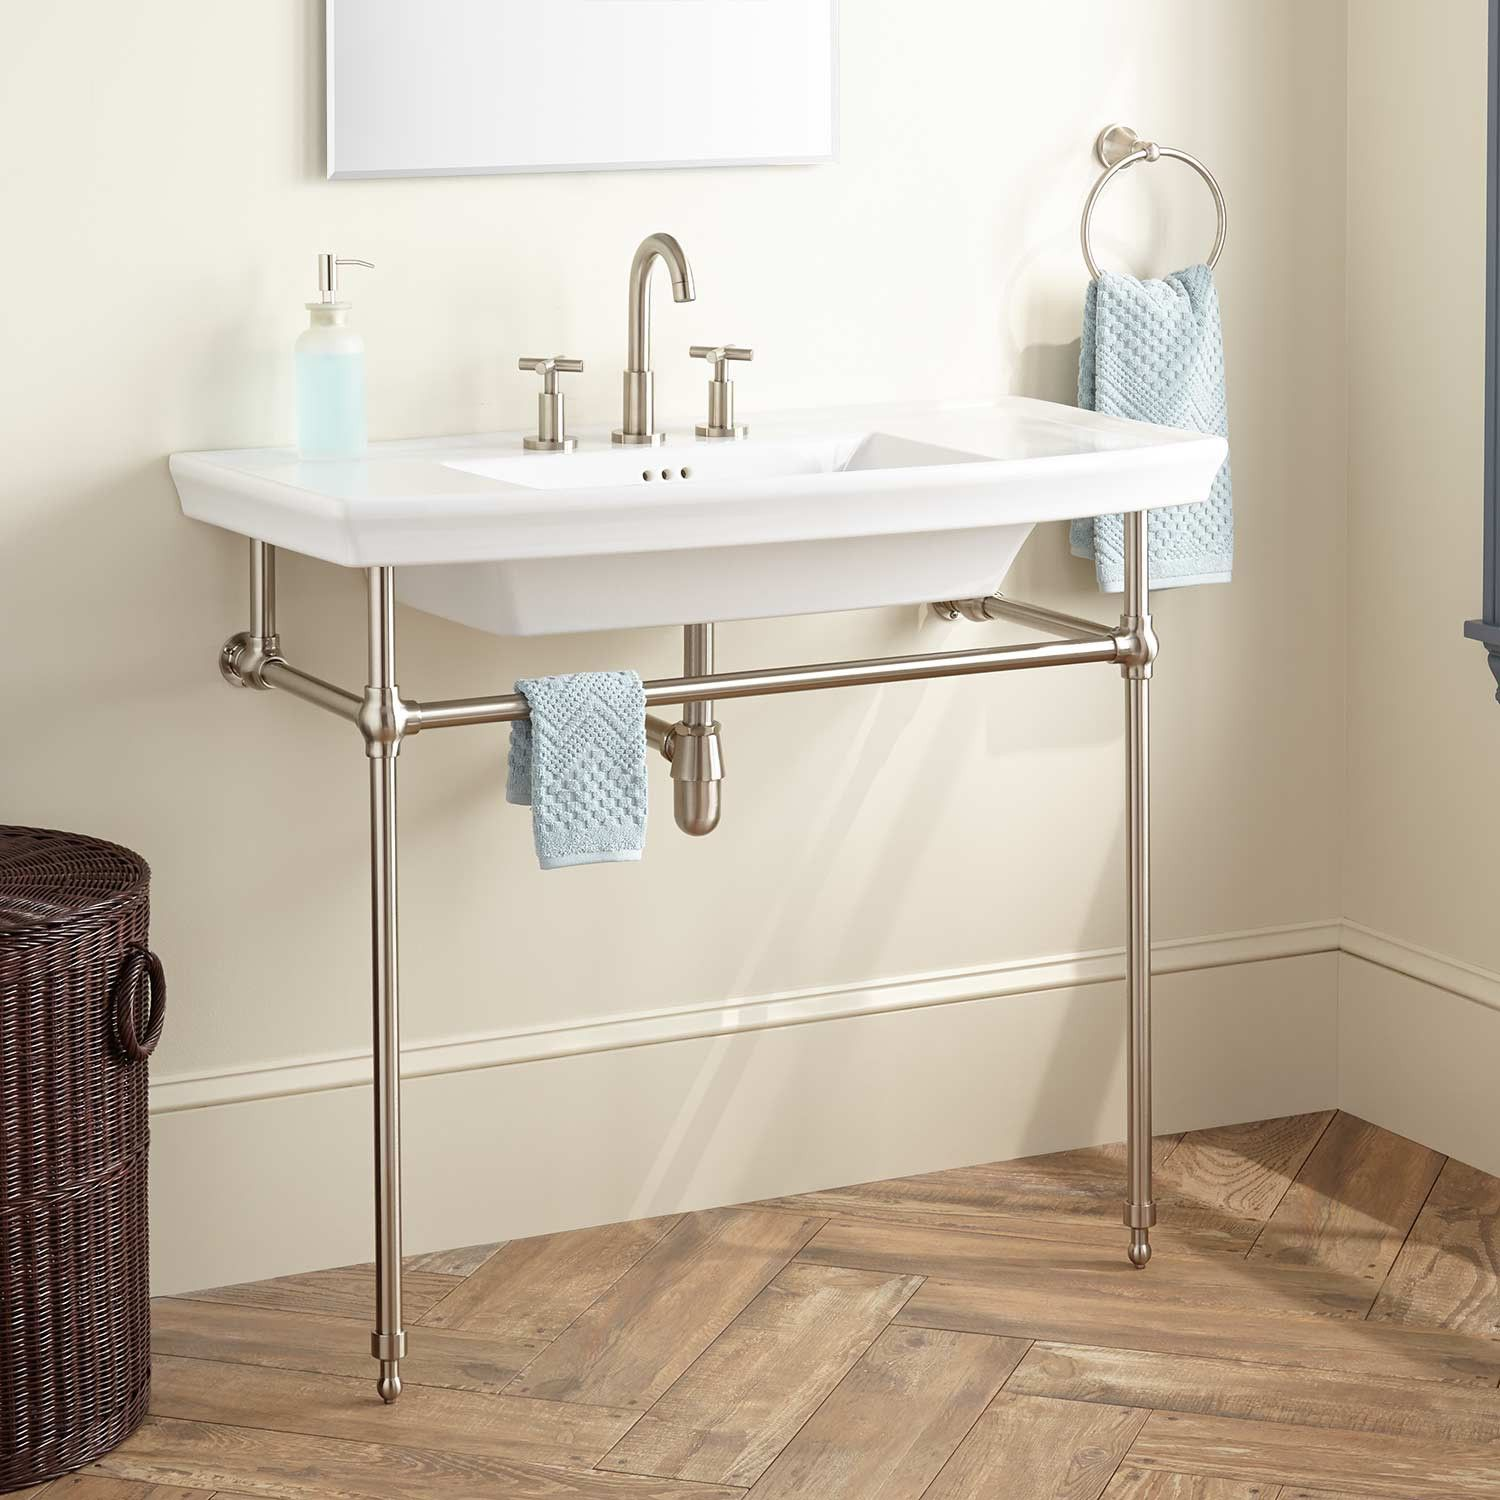 Olney Porcelain Console Sink with Brass Stand  Bathroom